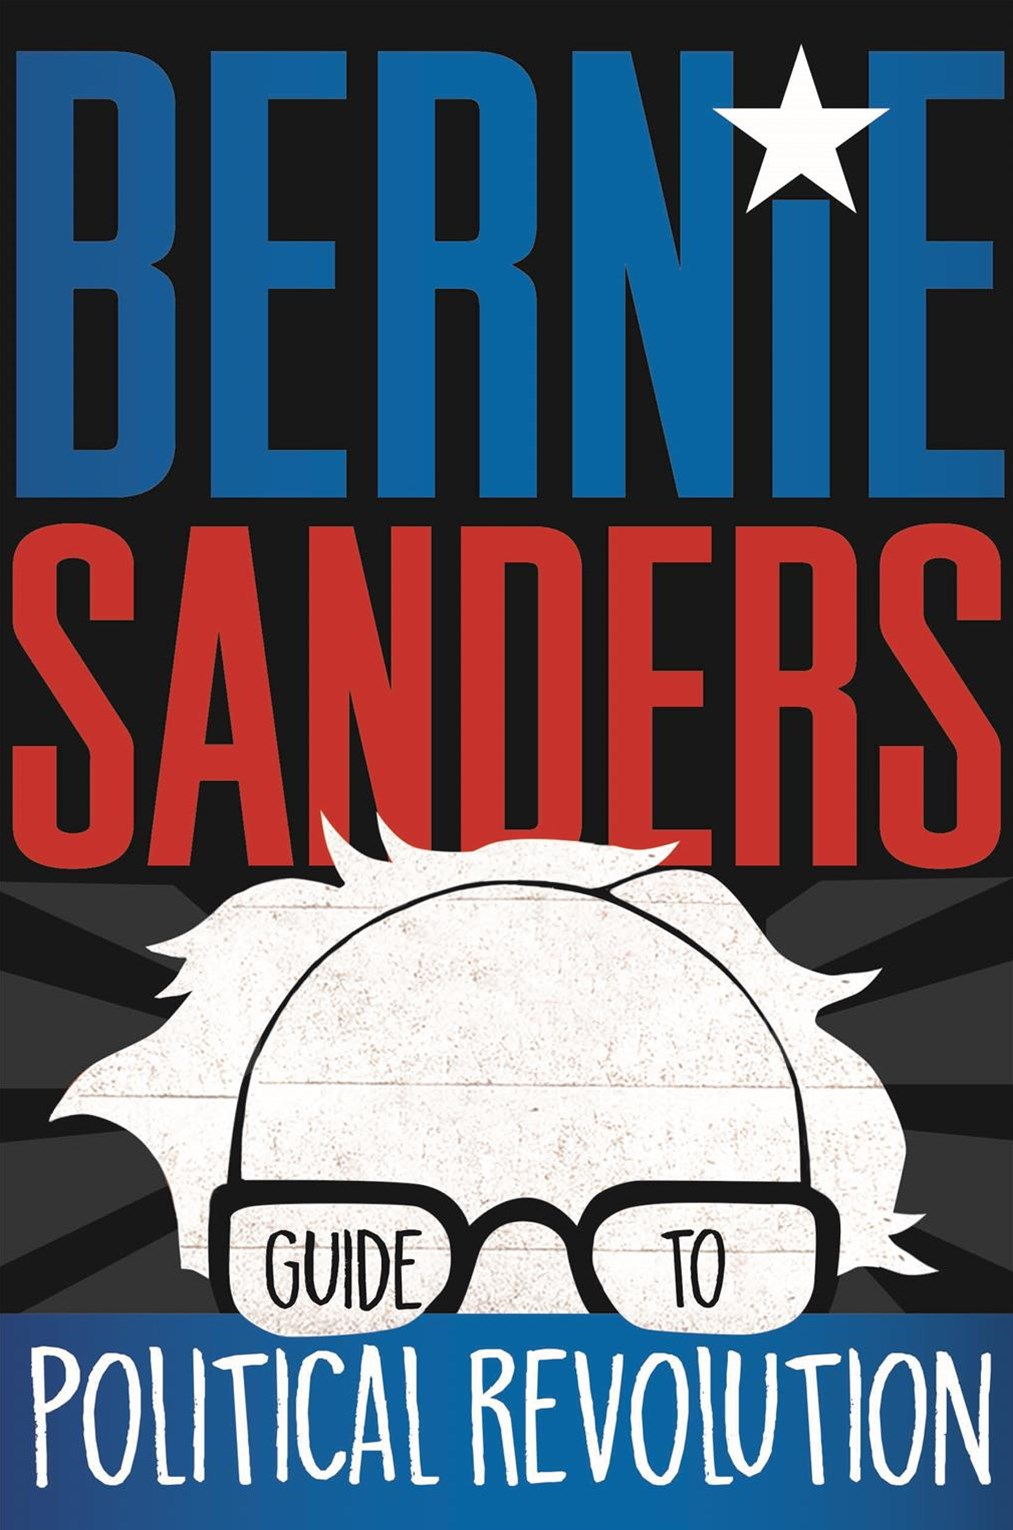 Bernie Sanders's Our Revolution